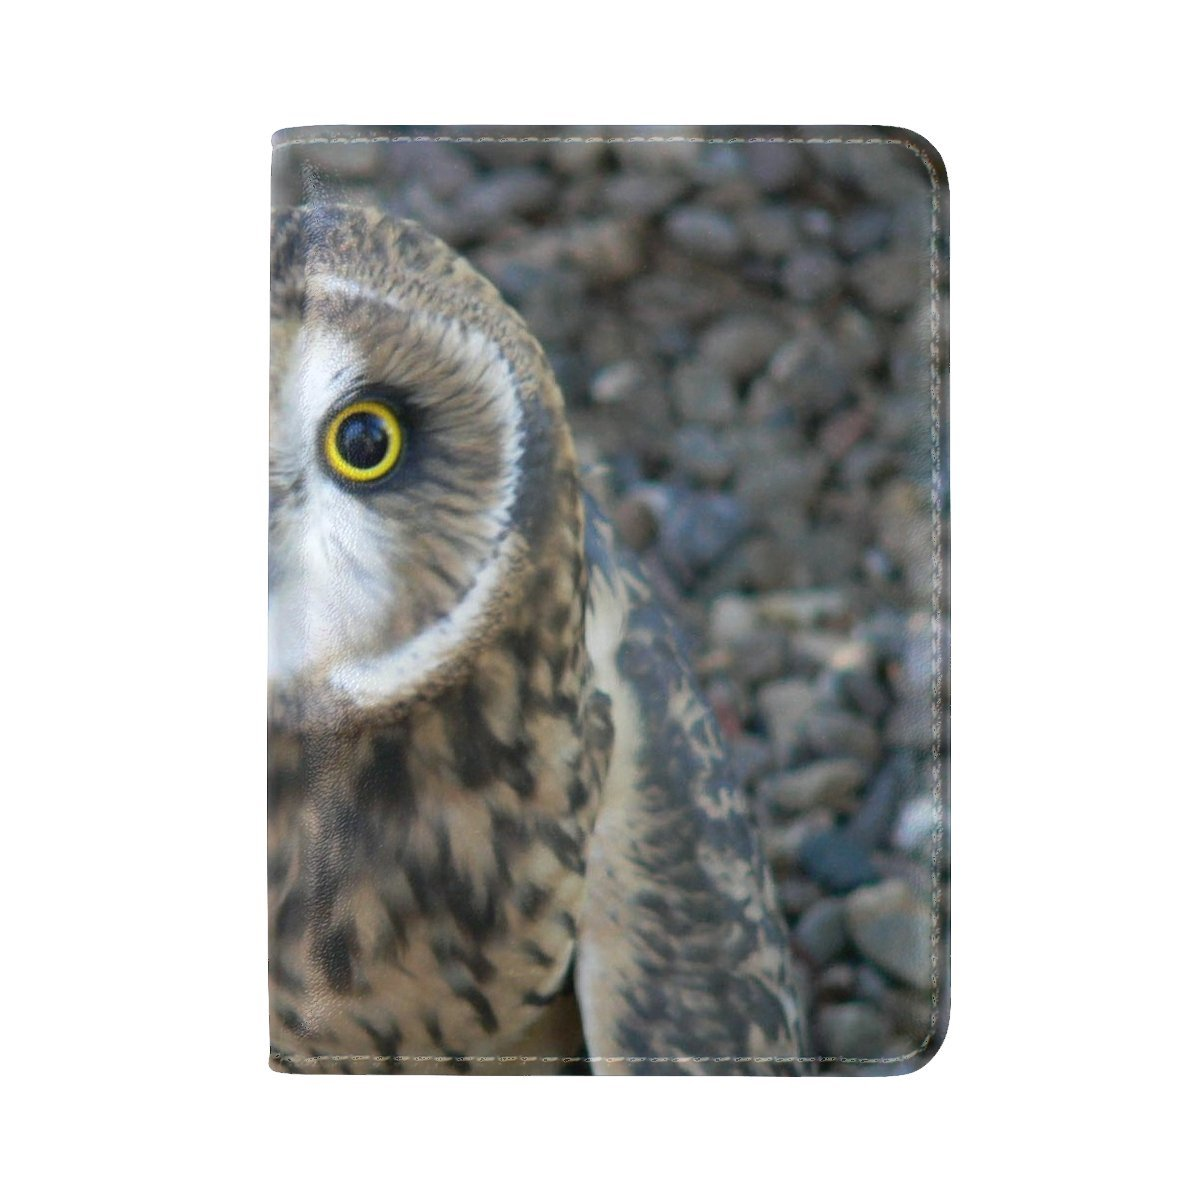 Animal Owl Short-eared Adorable Fluffy Small Stable Wild Flying Leather Passport Holder Cover Case Travel One Pocket